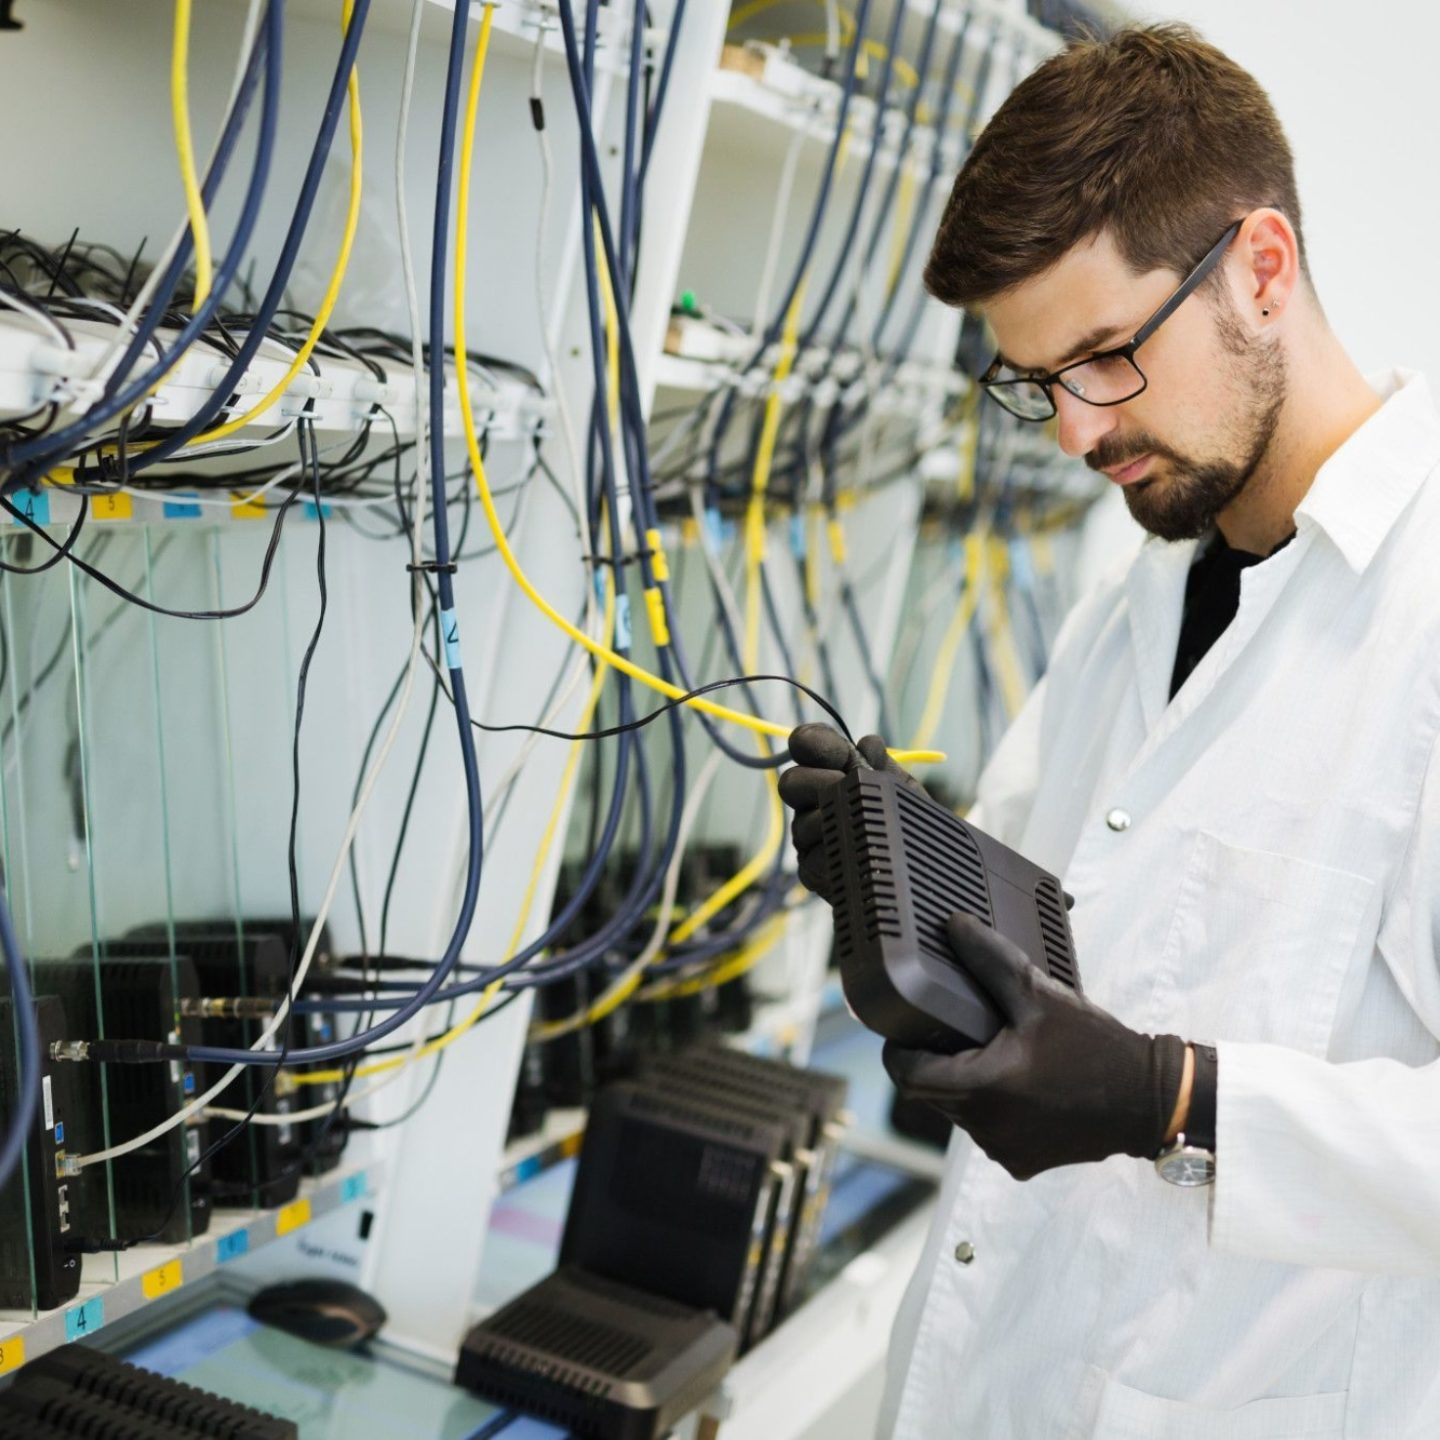 Man plugging in network wires - NSF-ISR's Provides Full ISO/IEC 27001 Certification Remotely | NSF International